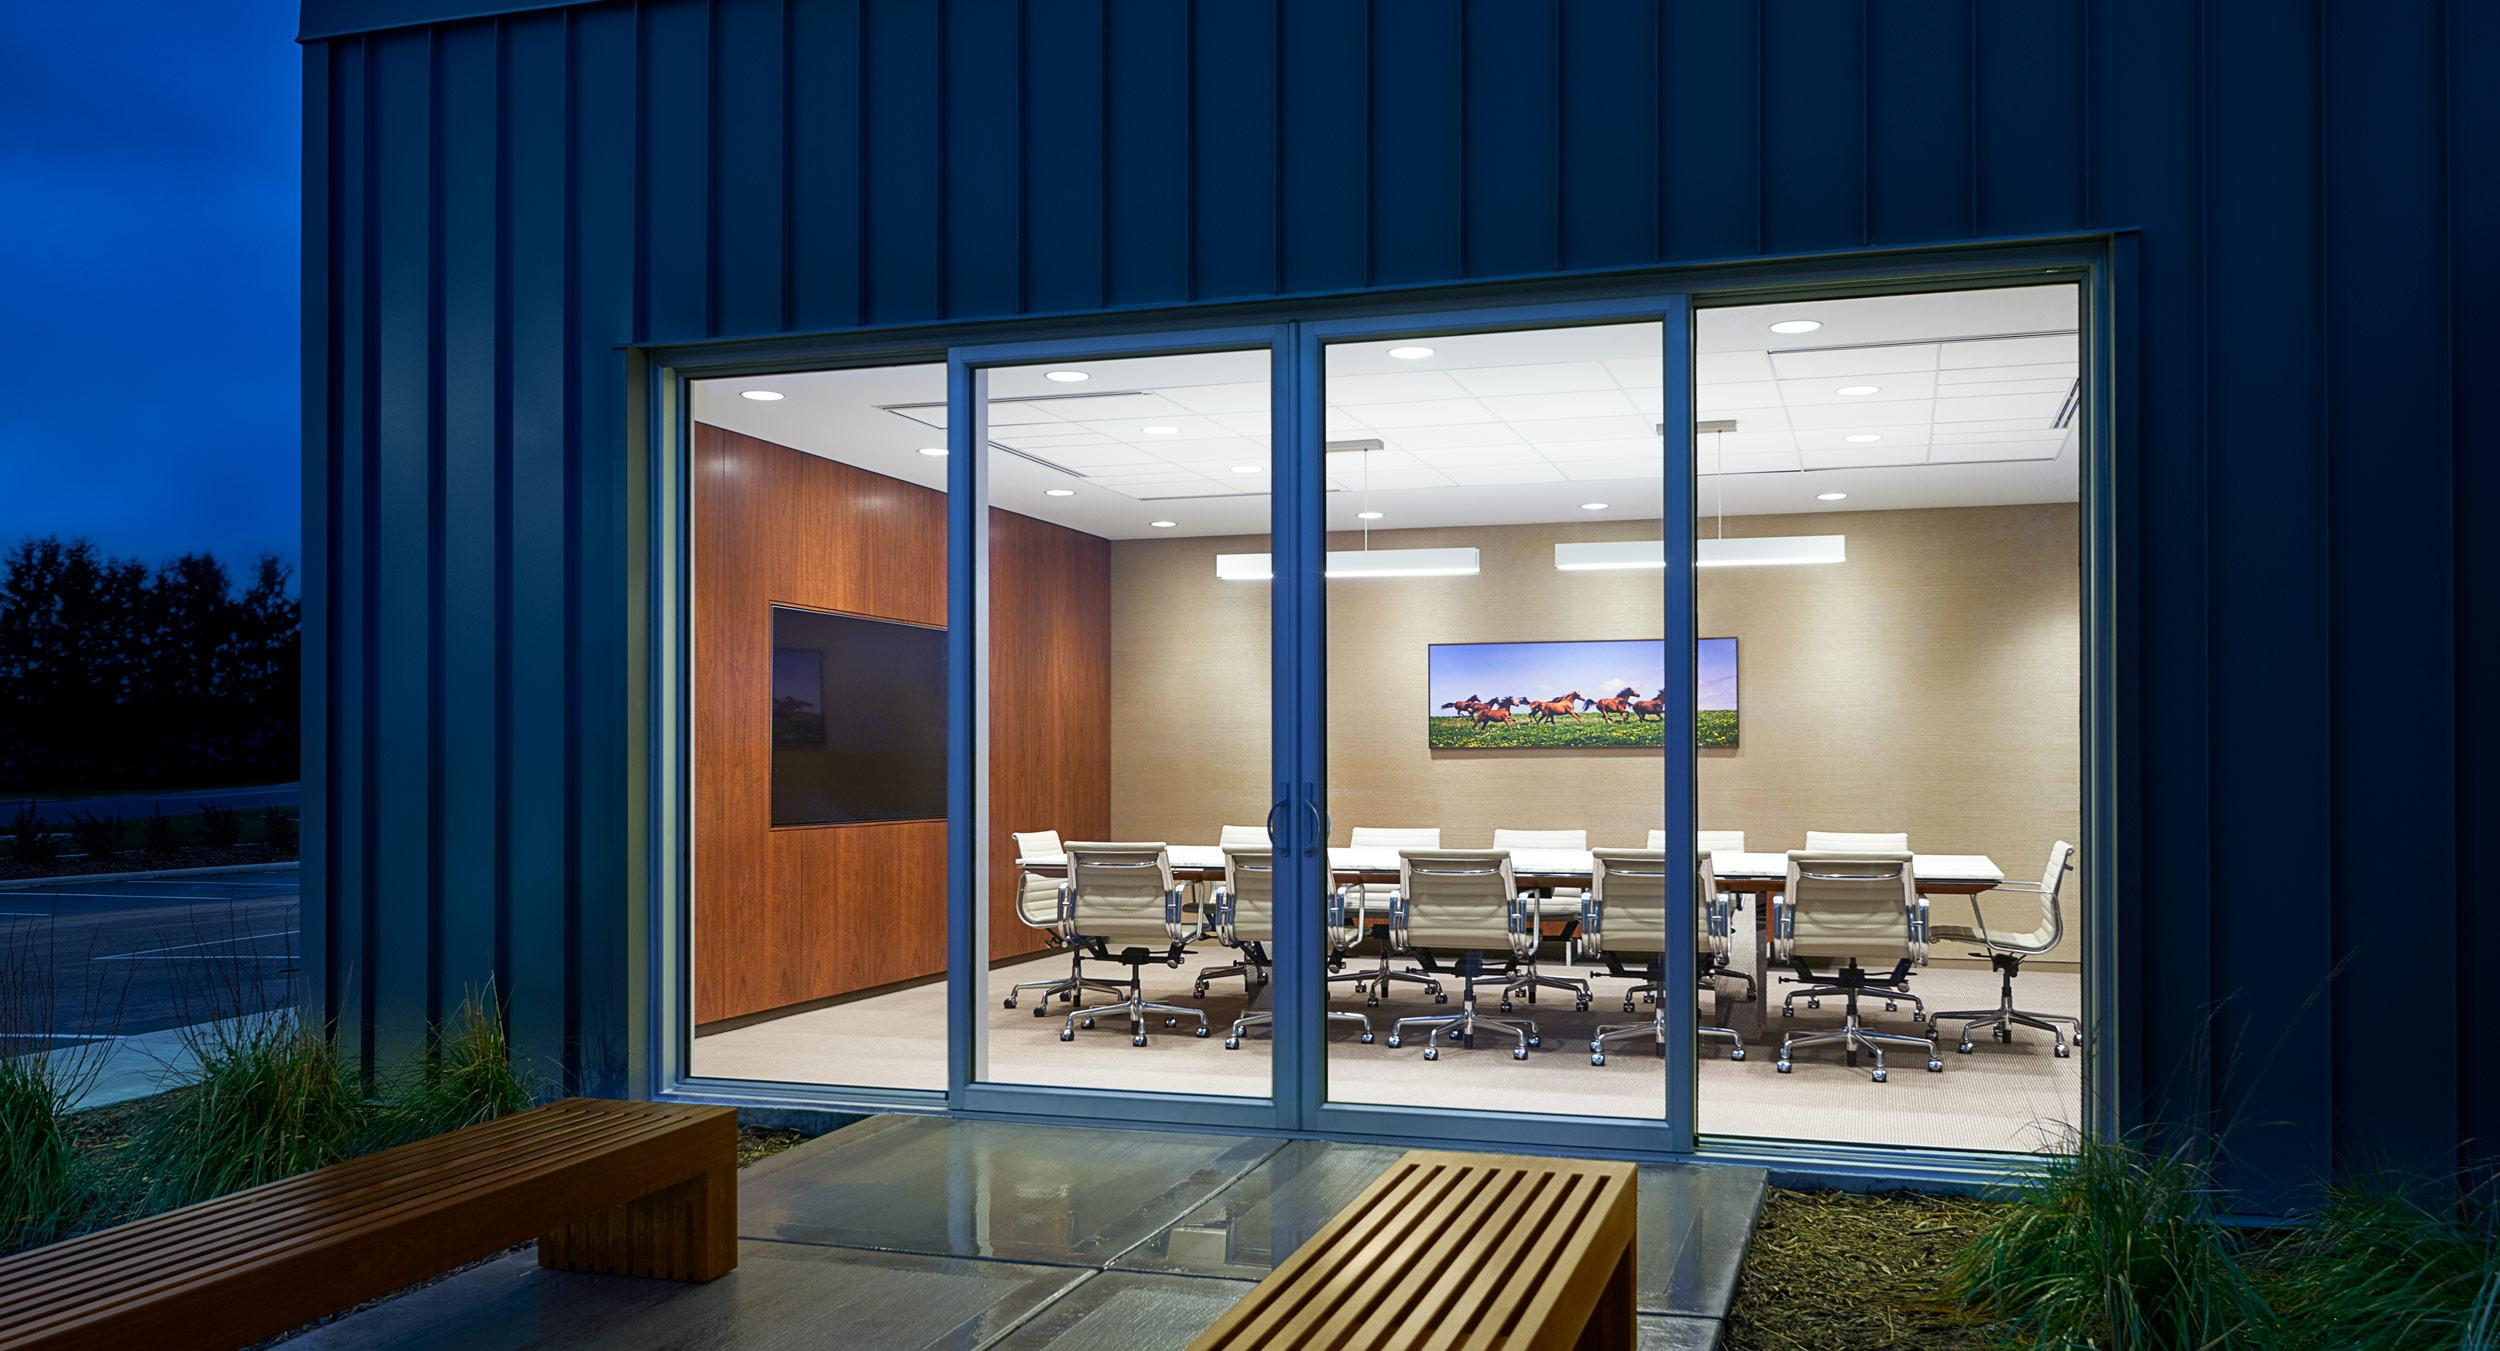 Our main conference room features a MESA table with a custom integrated media wall in Figured Walnut.